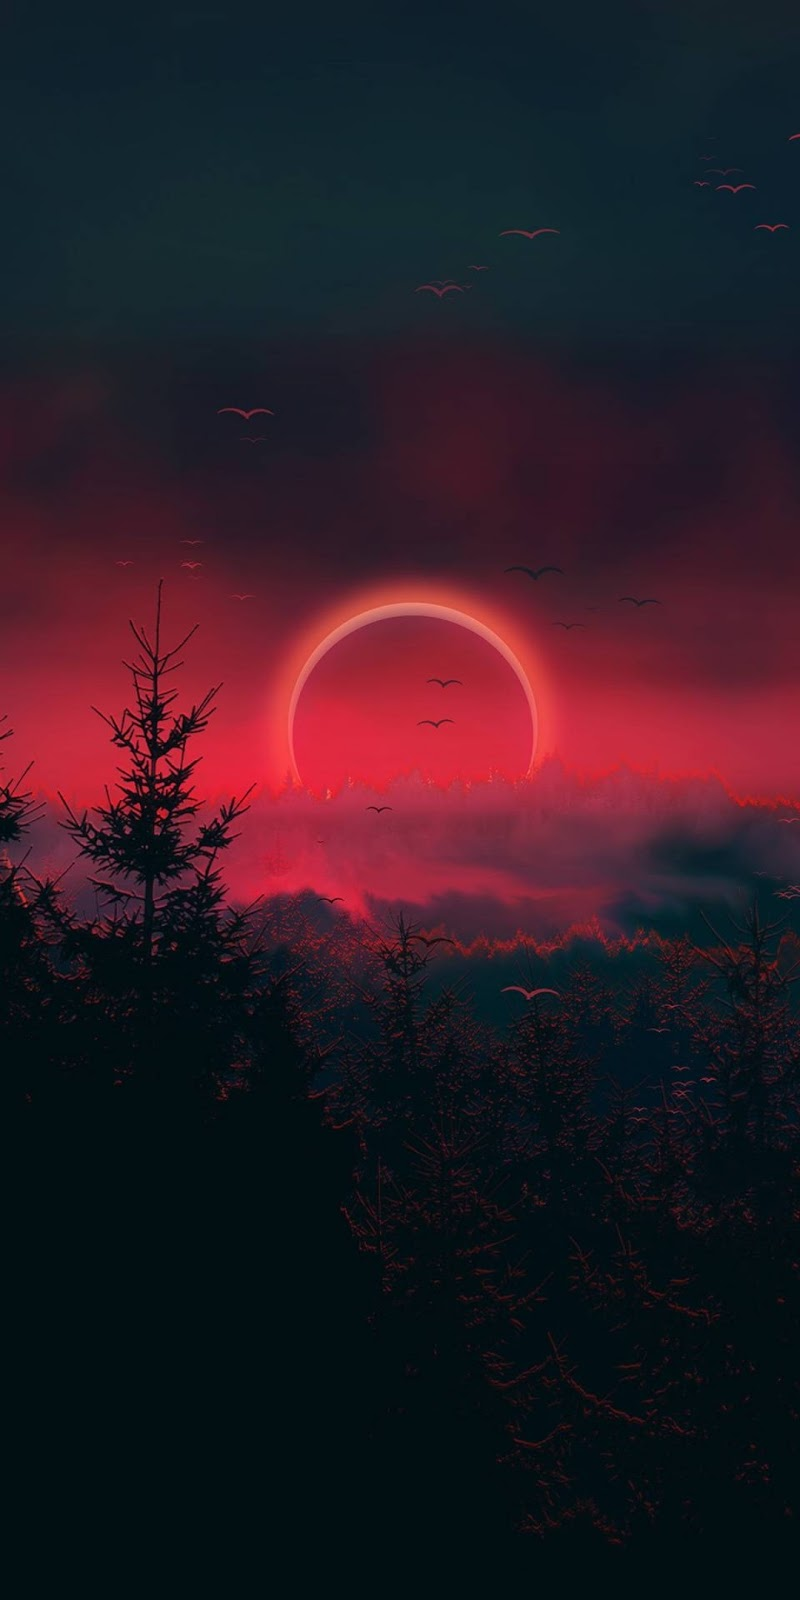 Eclipse sky